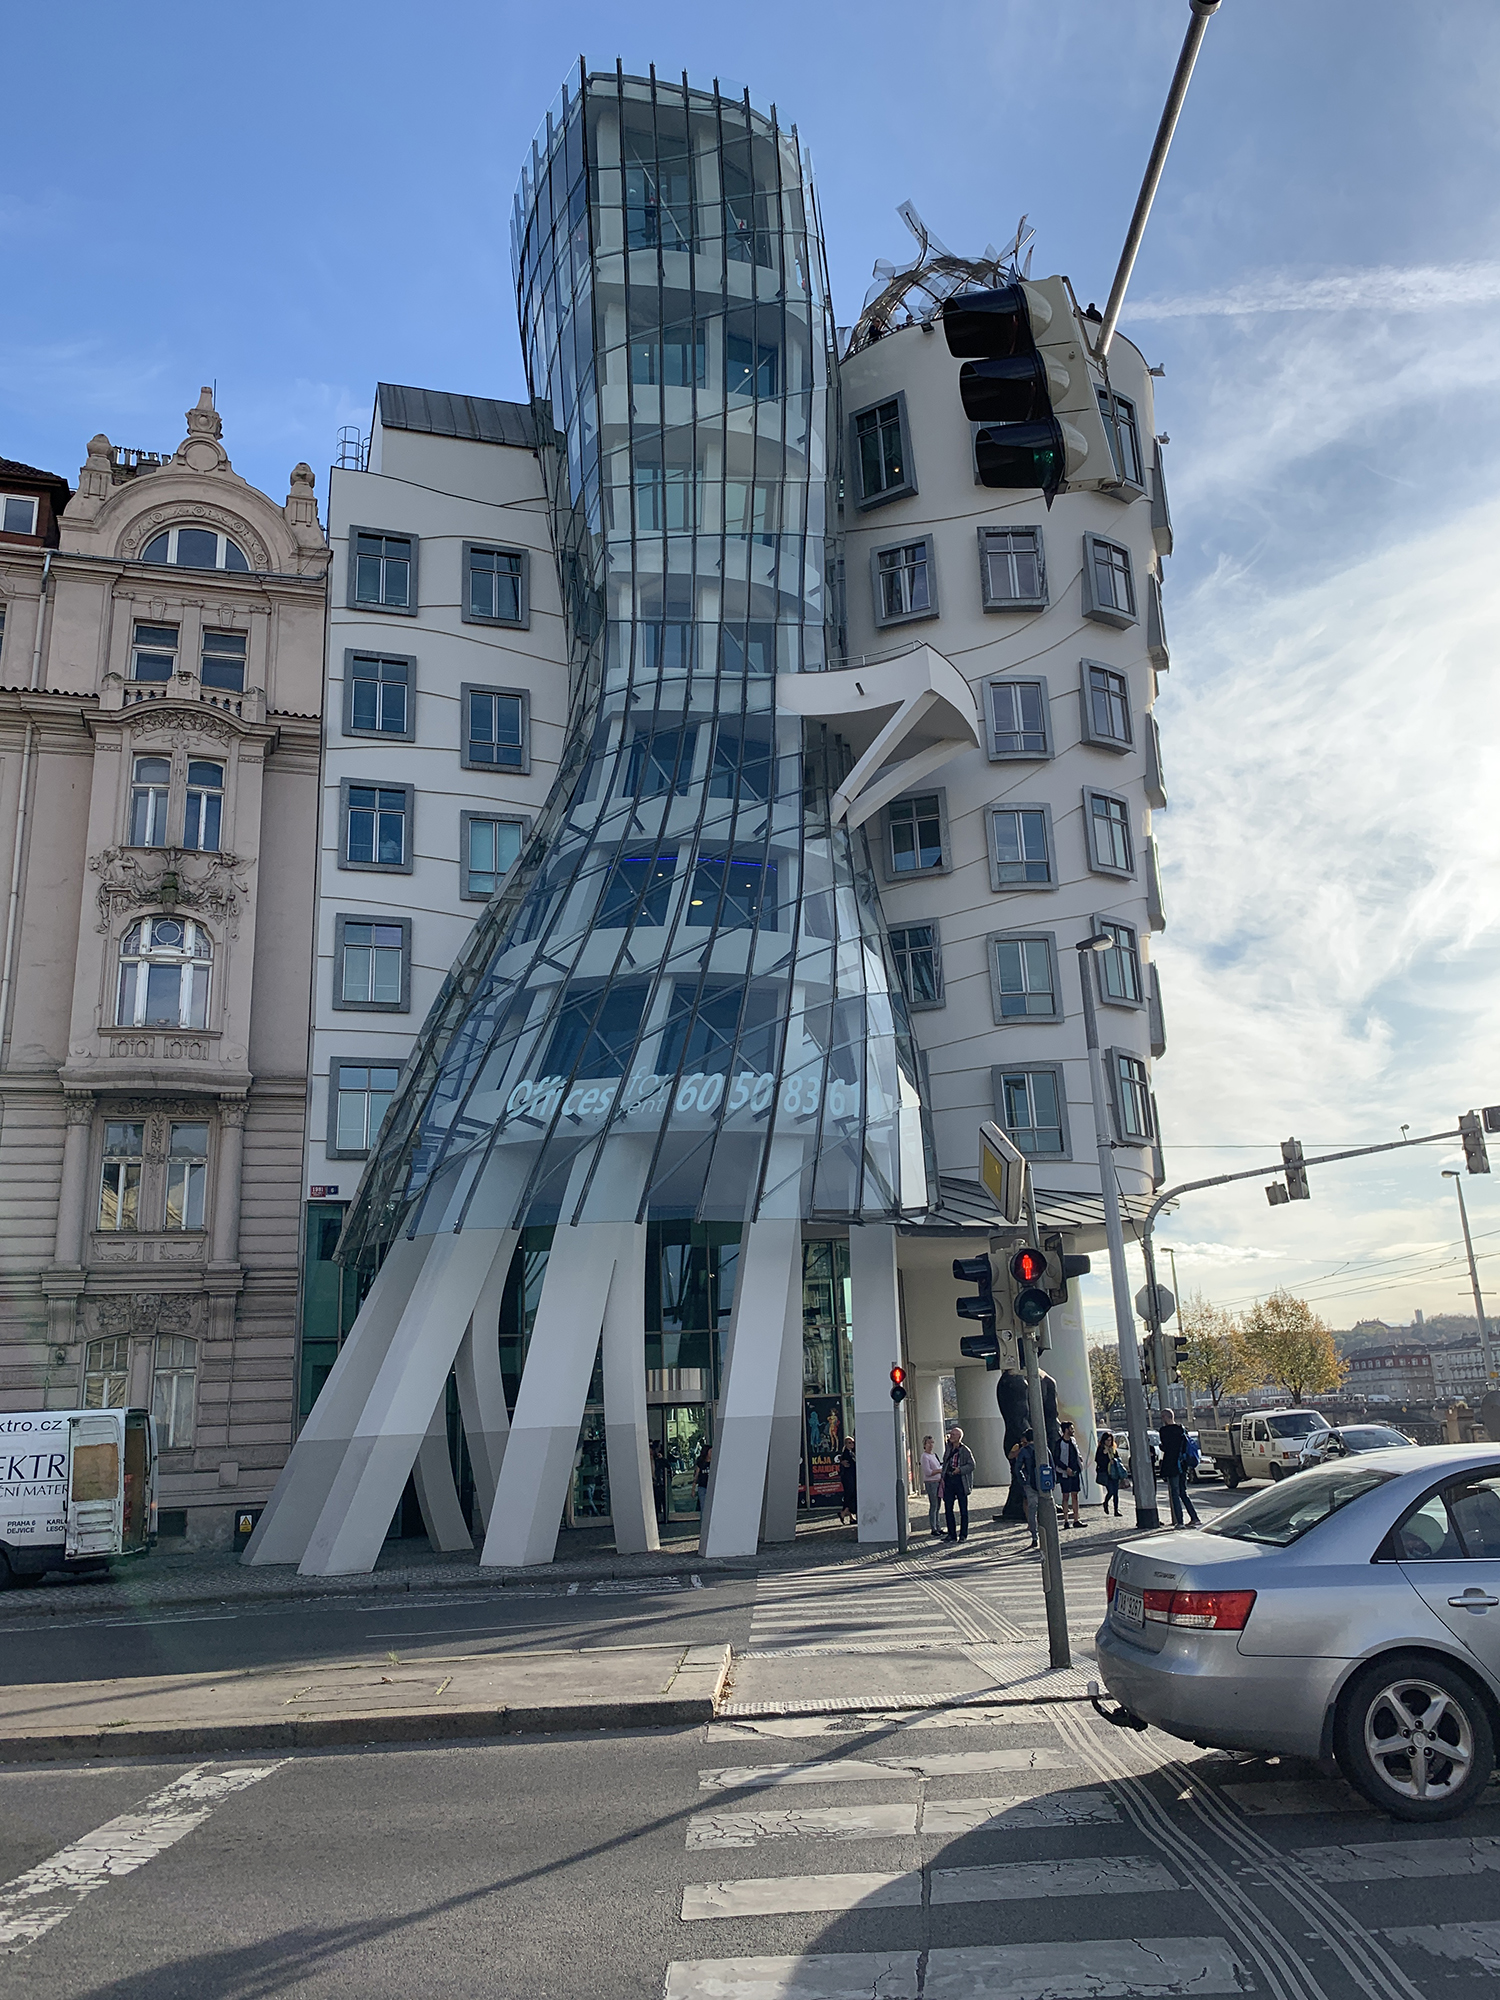 A uniquely shaped building. There are traffic lights, people, and cars in front of it.